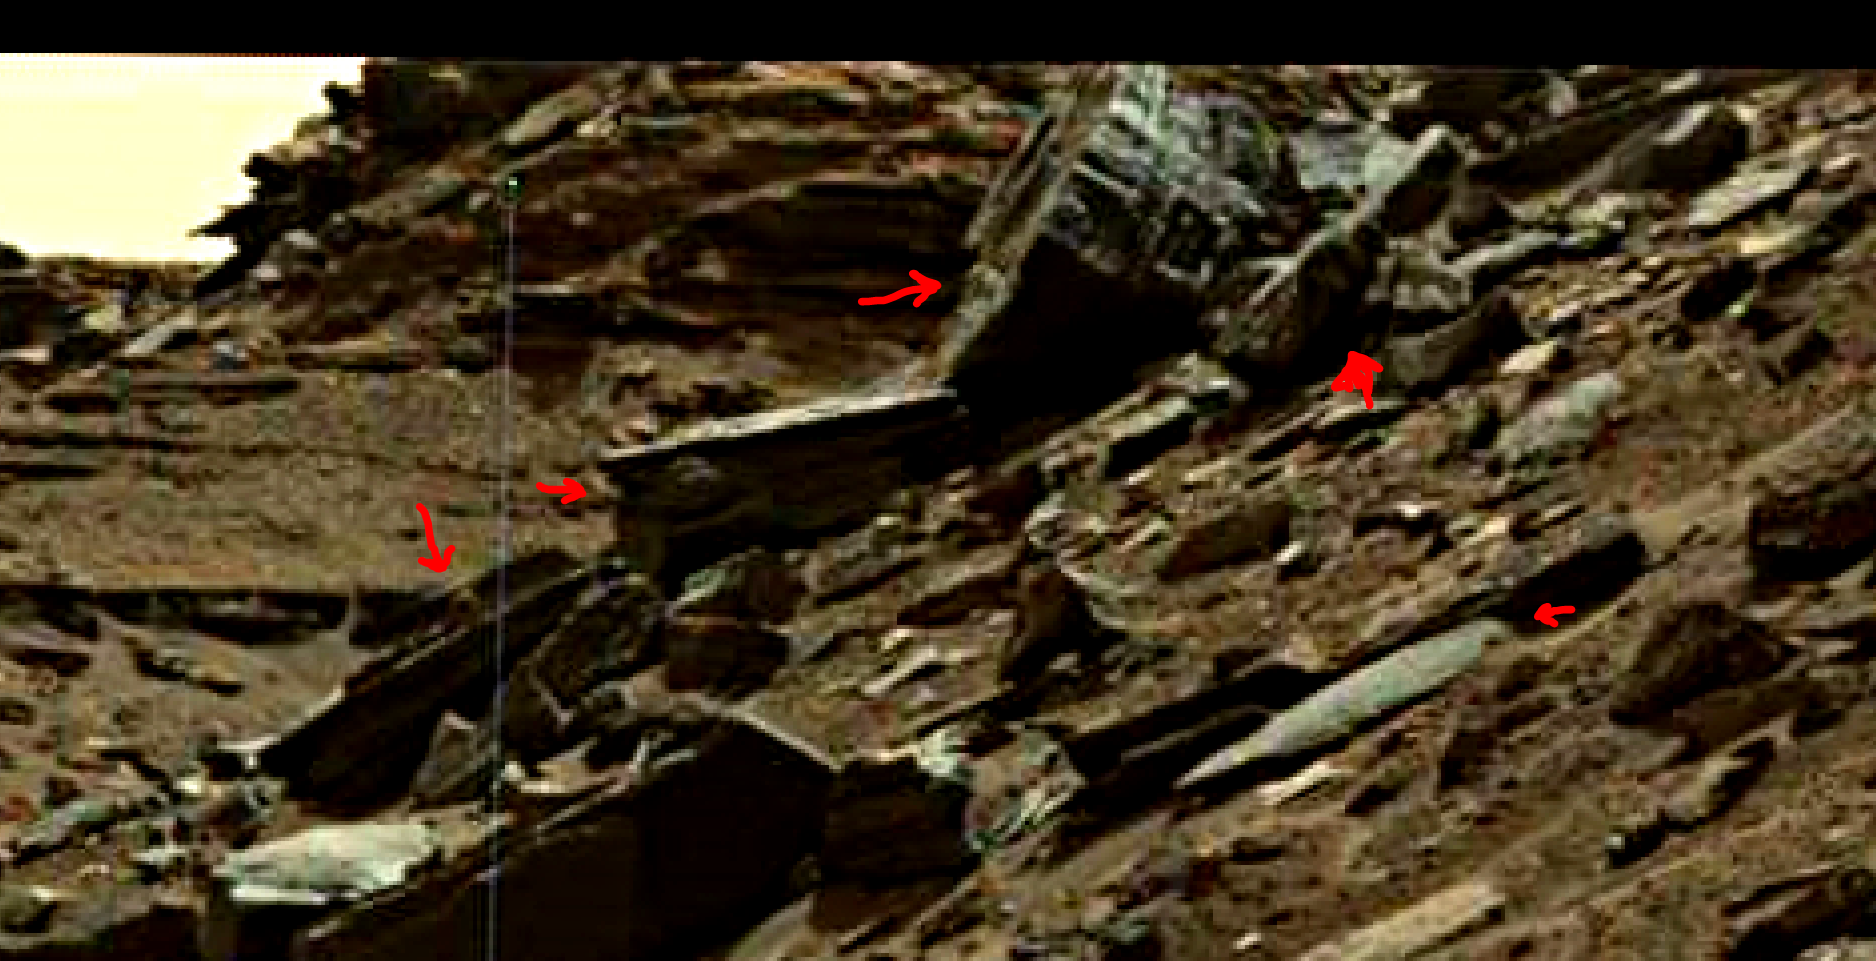 mars-sol-1452-anomaly-artifacts-1a-was-life-on-mars